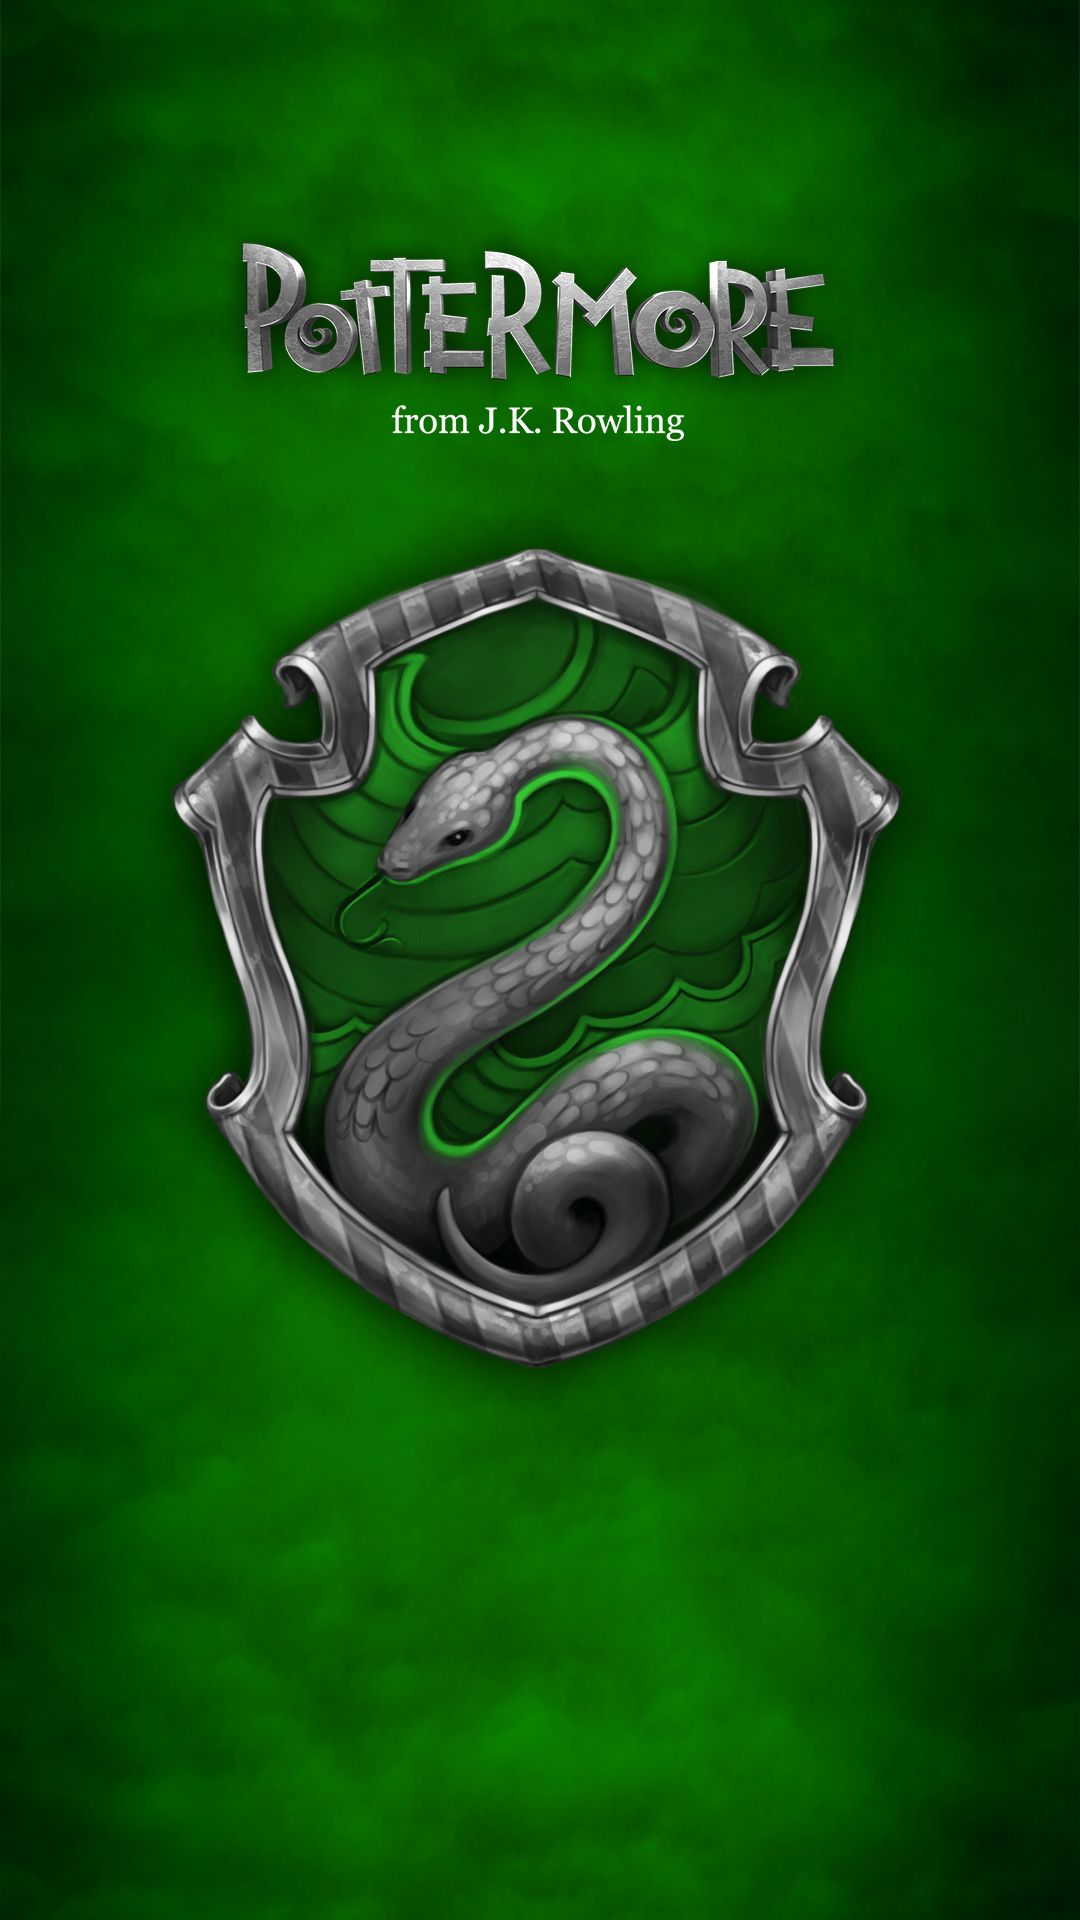 Slytherin Iphone Wallpaper Full Hd Live Wallpaper Hd Harry Potter Iphone Wallpaper Harry Potter Wallpaper Phone Slytherin Wallpaper